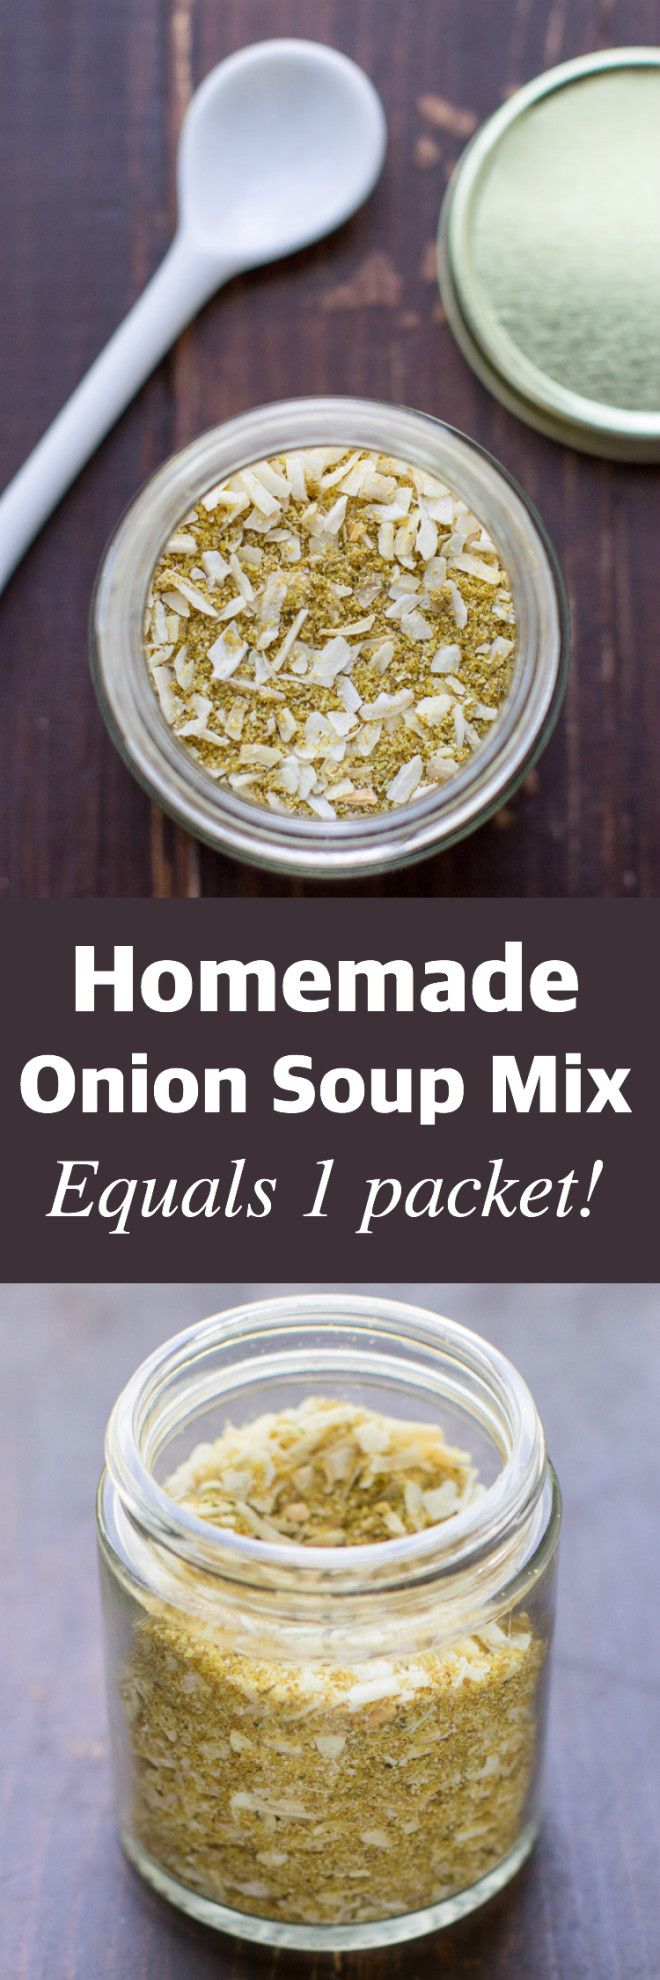 Homemade Onion Soup Mix is perfect for soups, dips, pot roast, and more! This easy recipe makes the equivalent of one packet, just what you need!